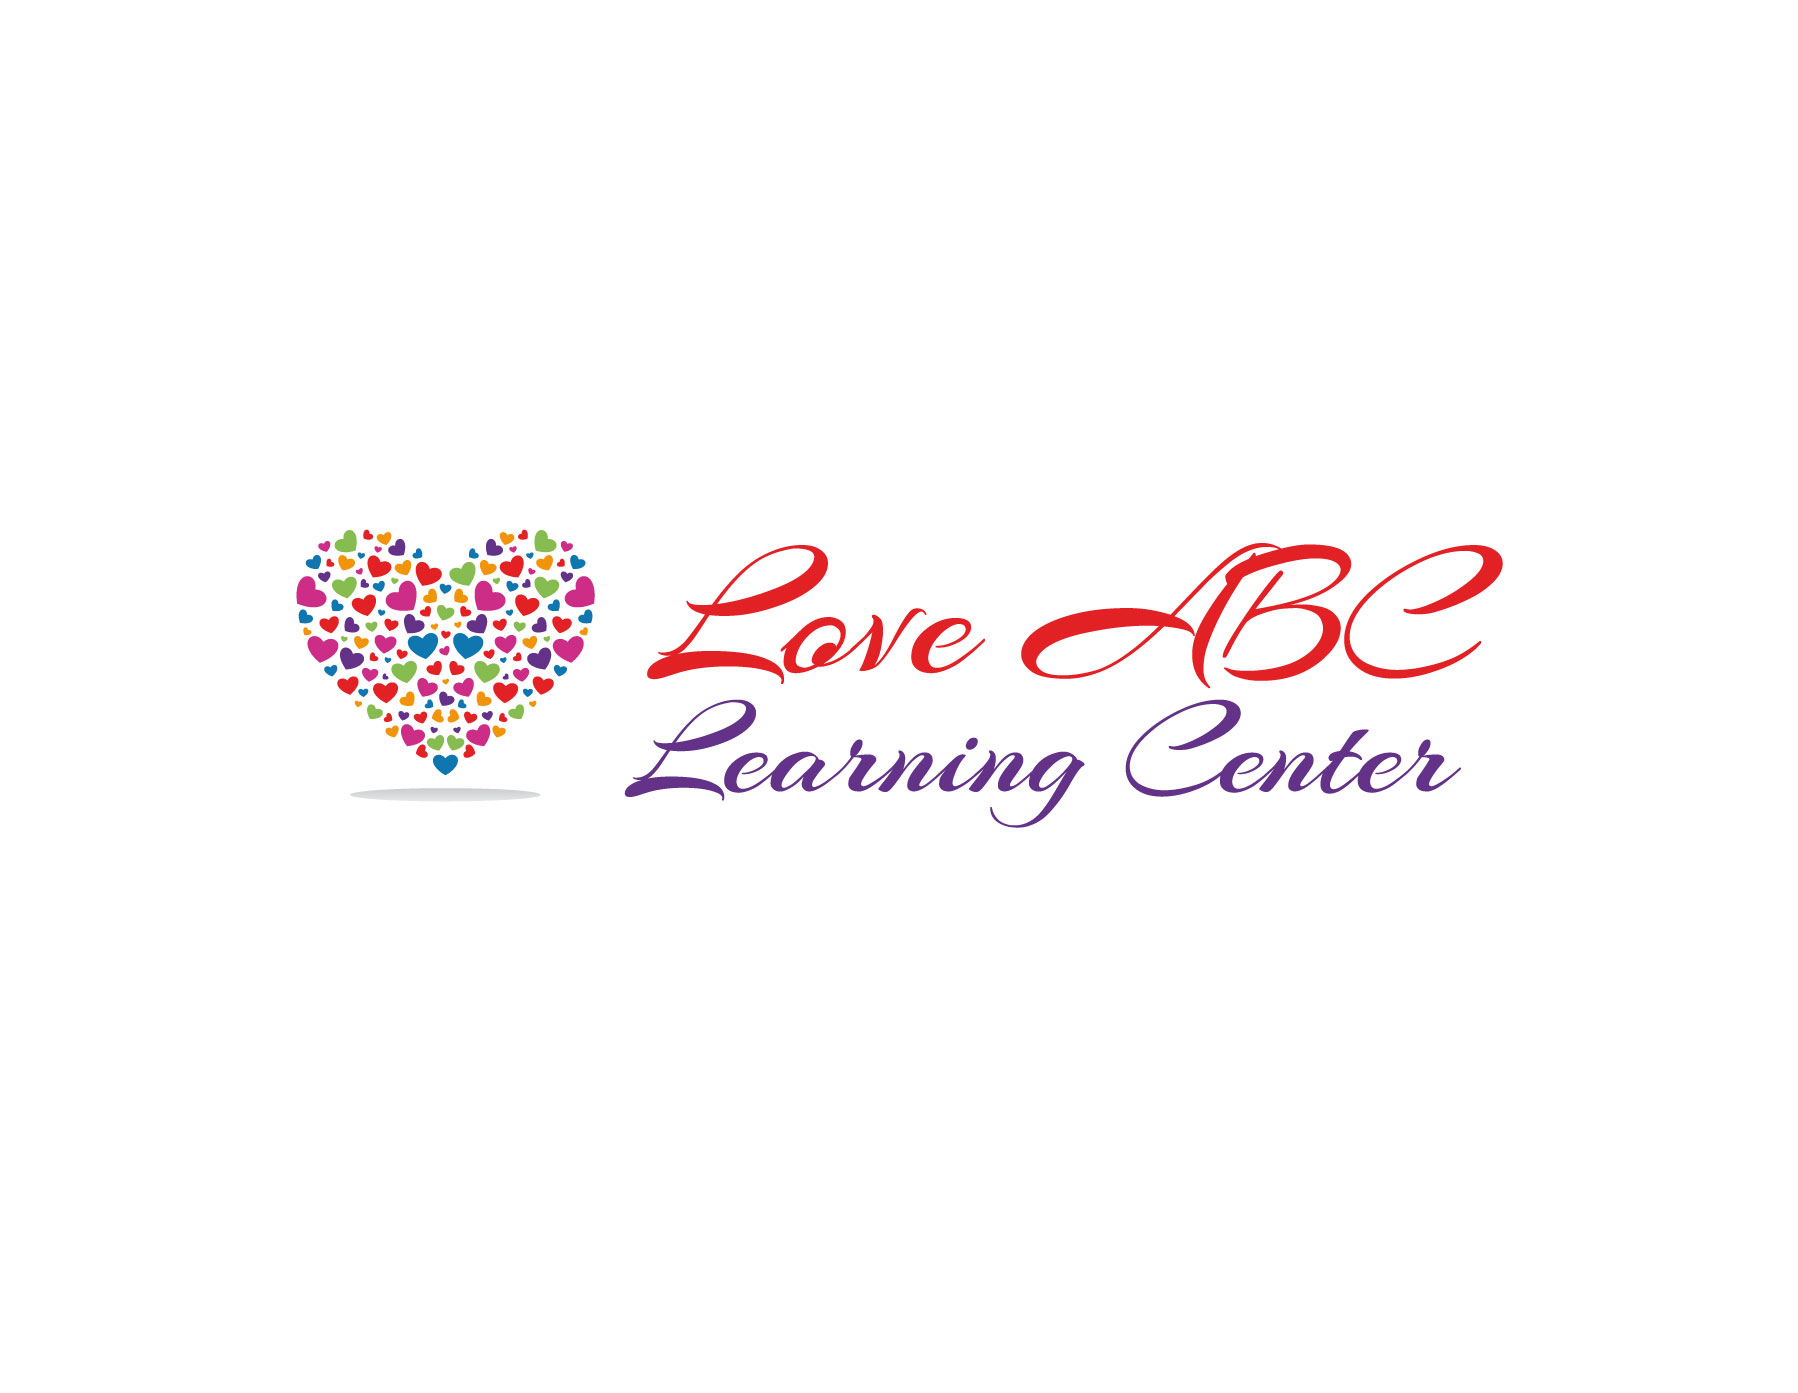 Love ABC Learning Center Inc